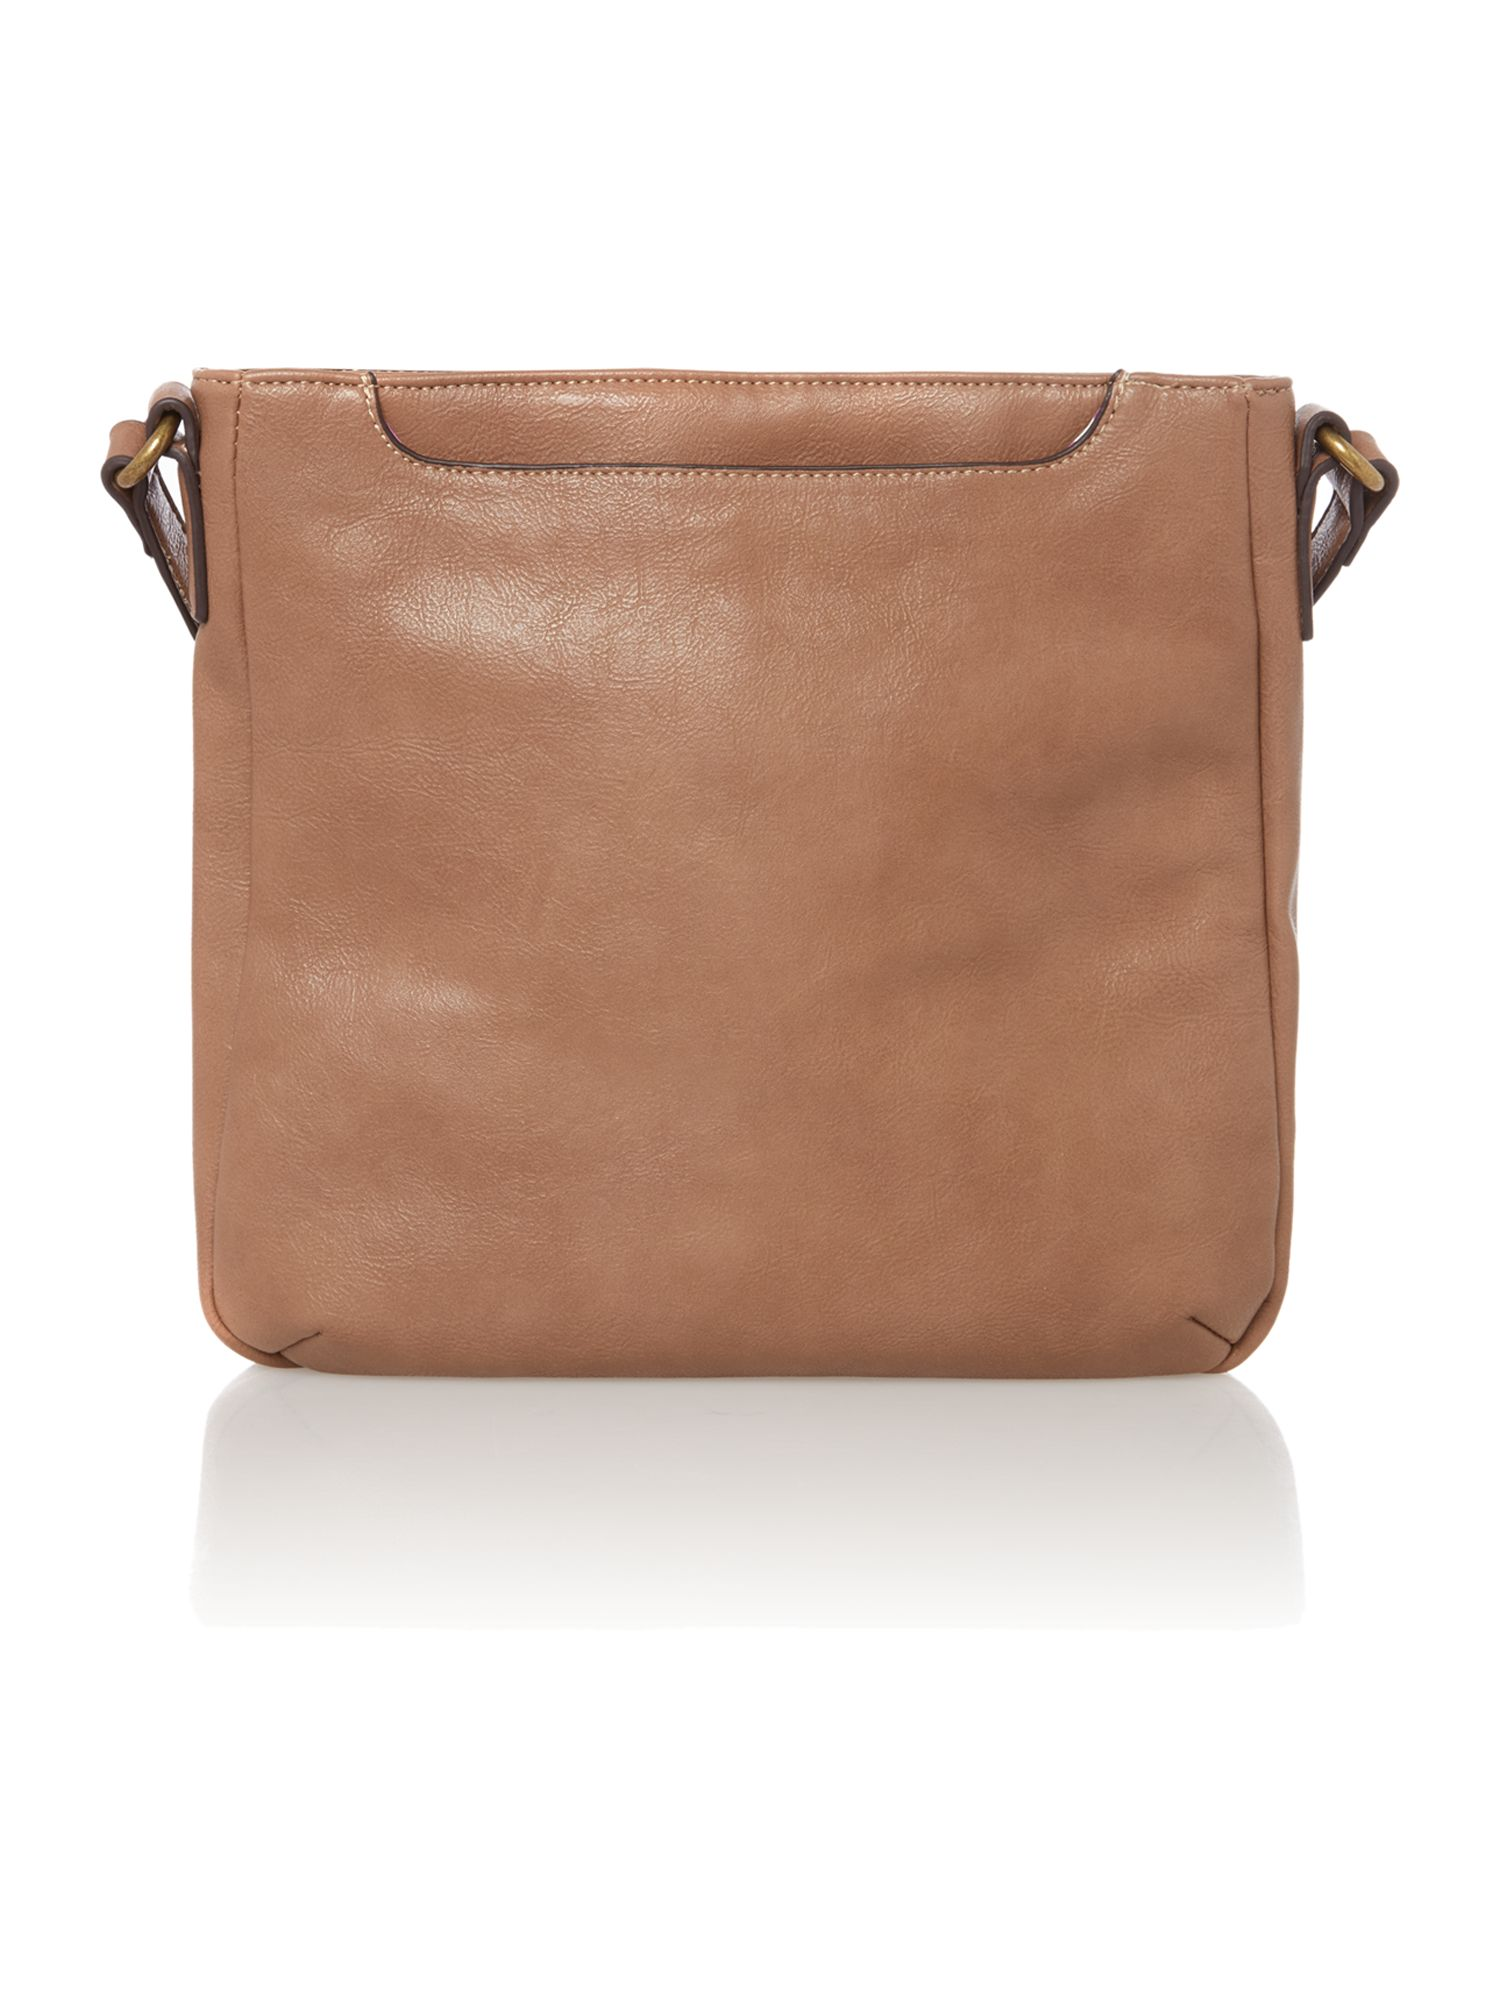 Judy brown cross body bag